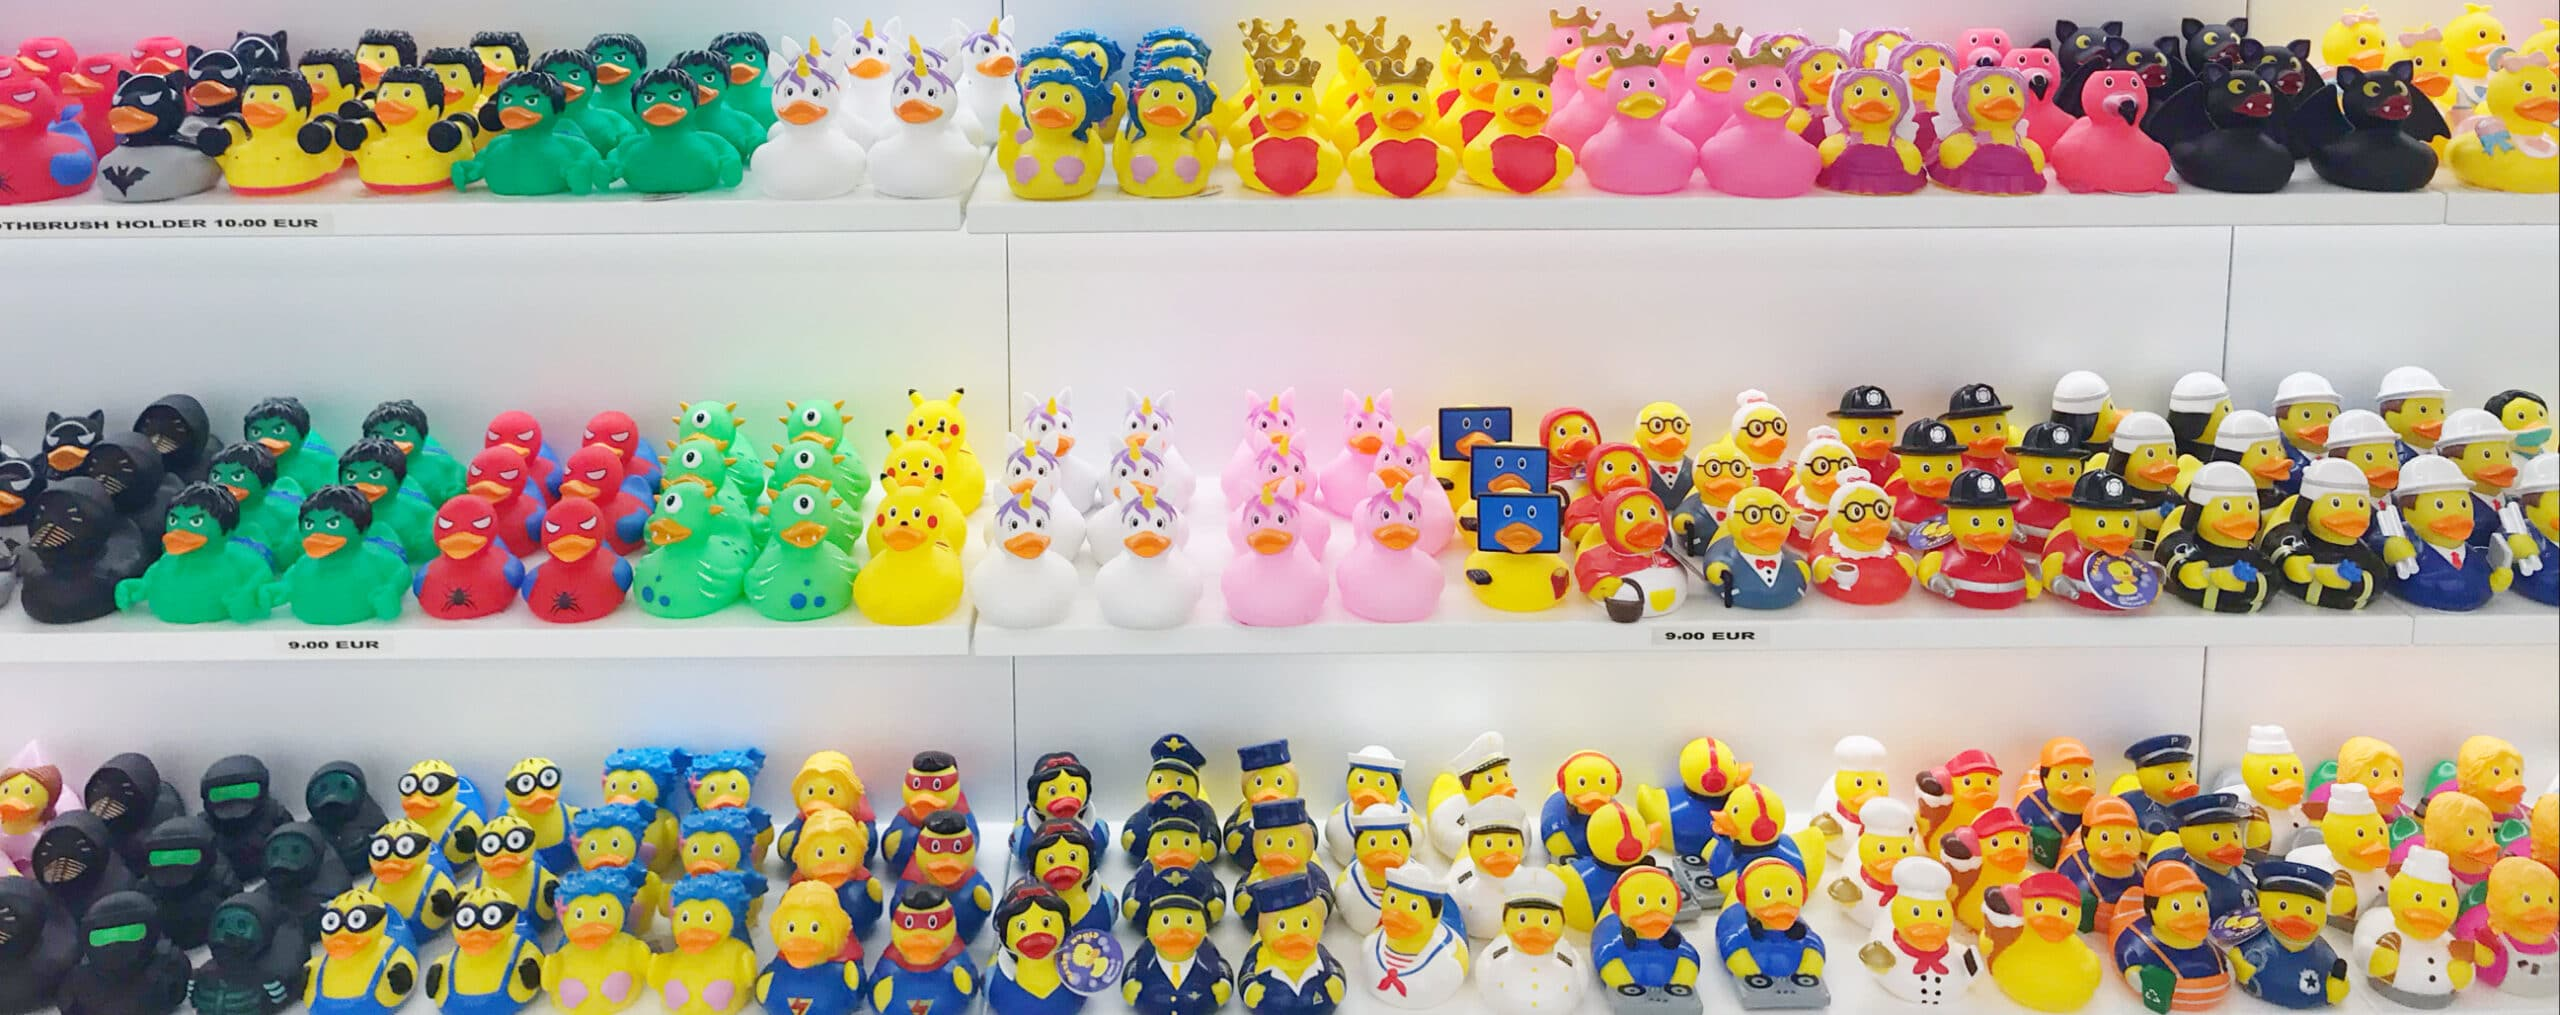 rubber ducks shop Rome Duck store